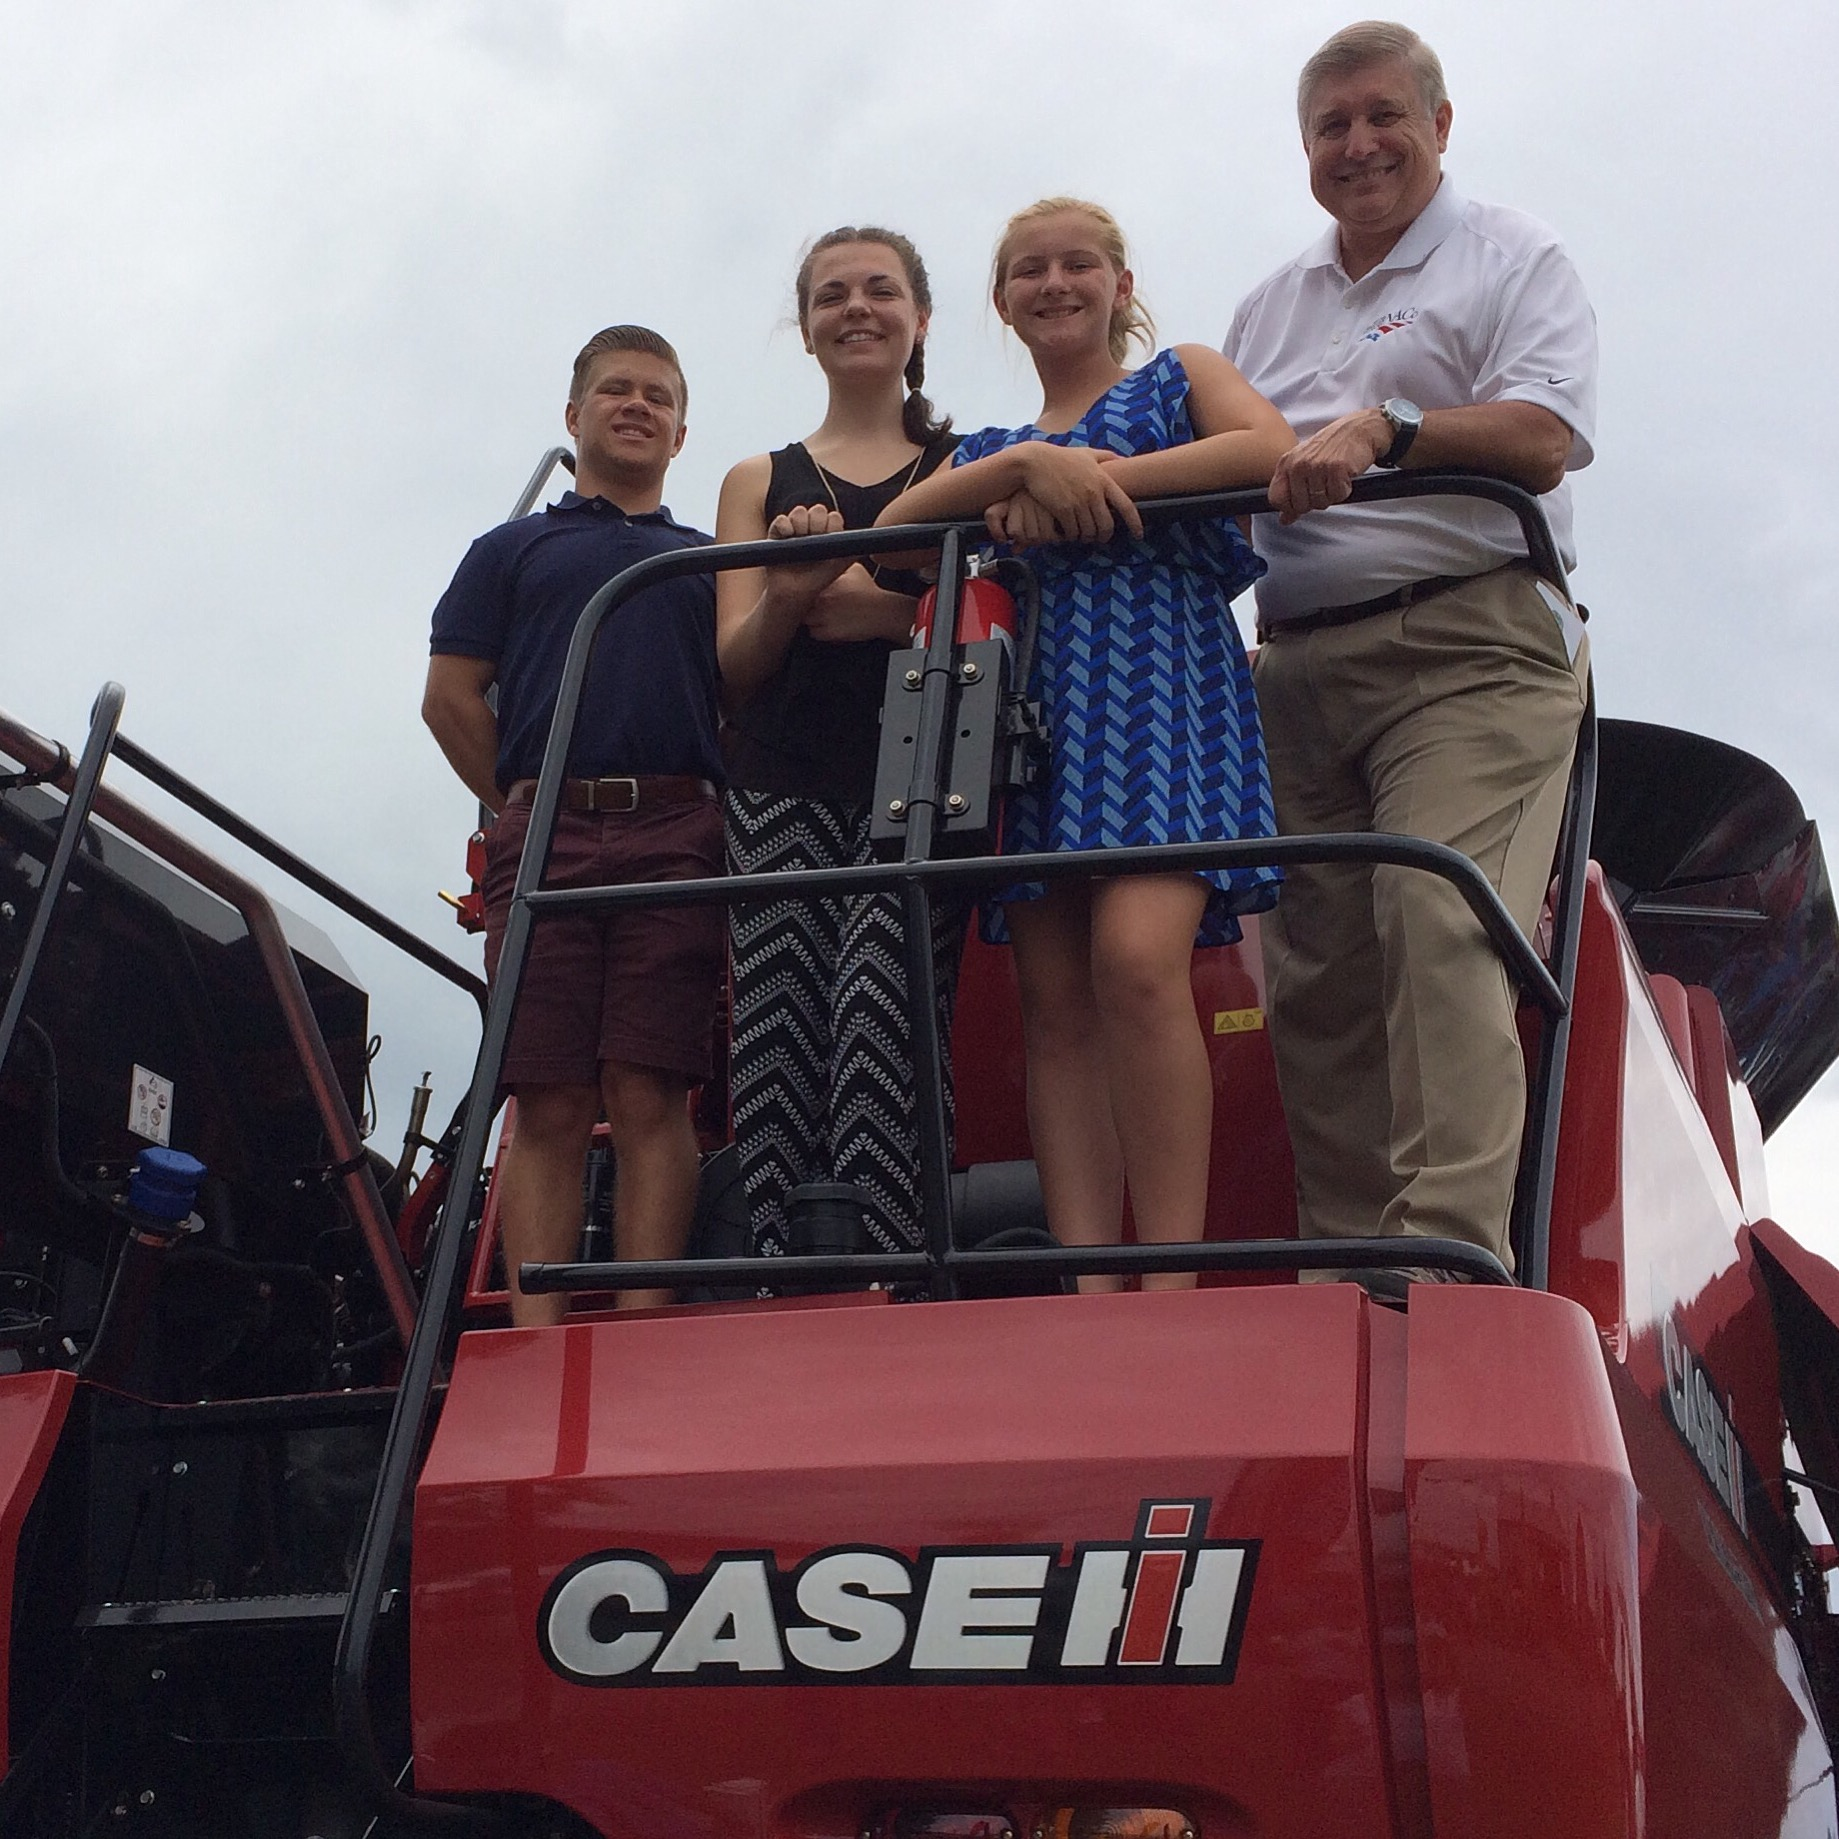 Penn State AG Progress Days